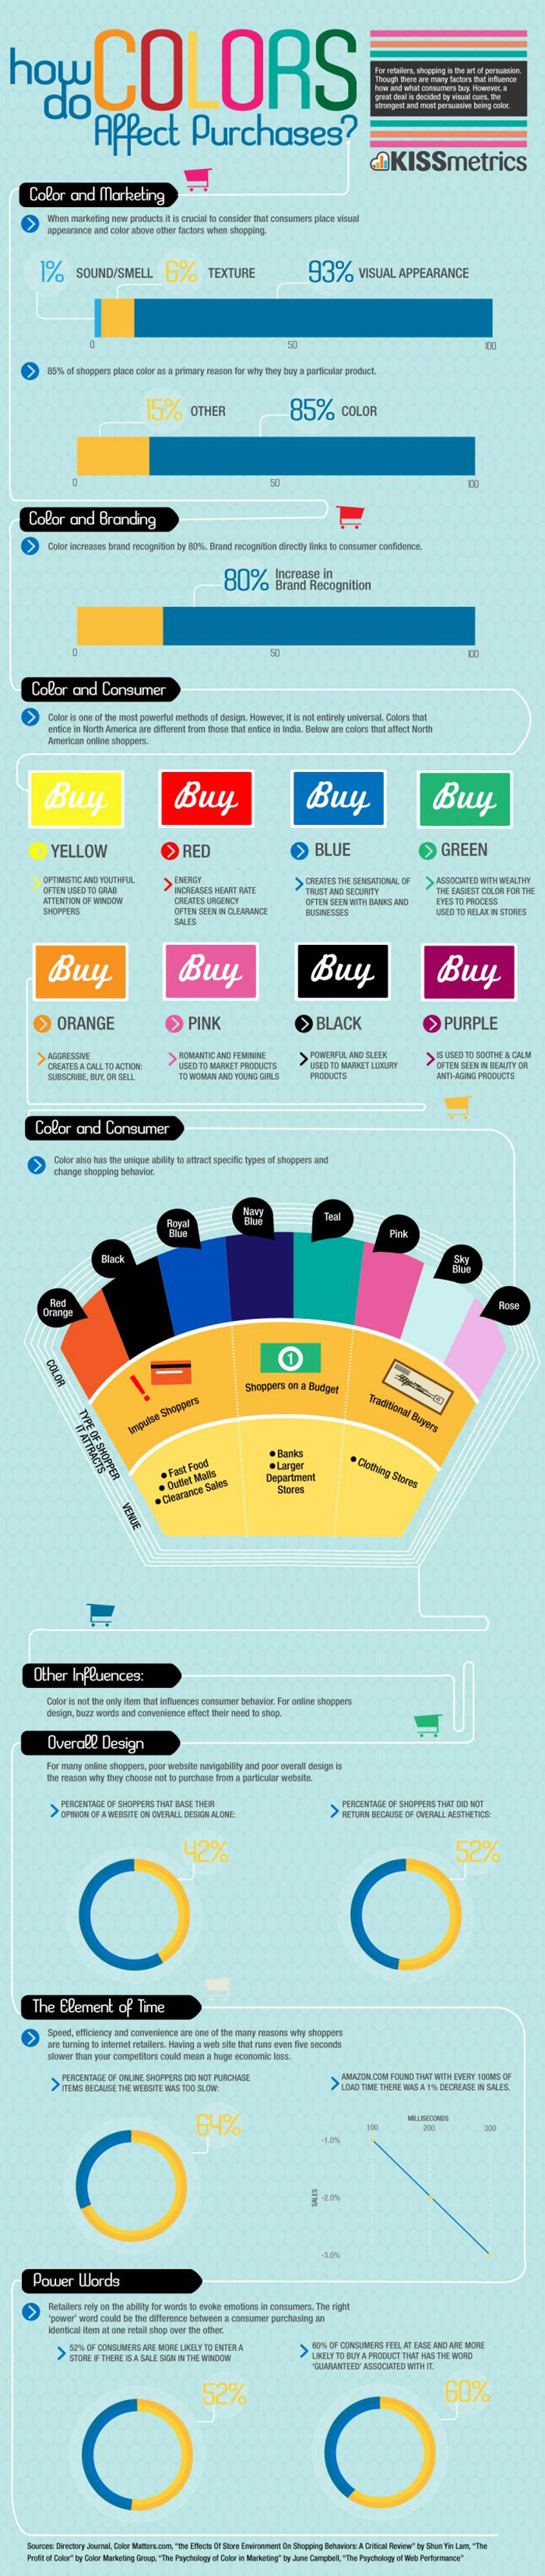 How colours effect marketing infographic